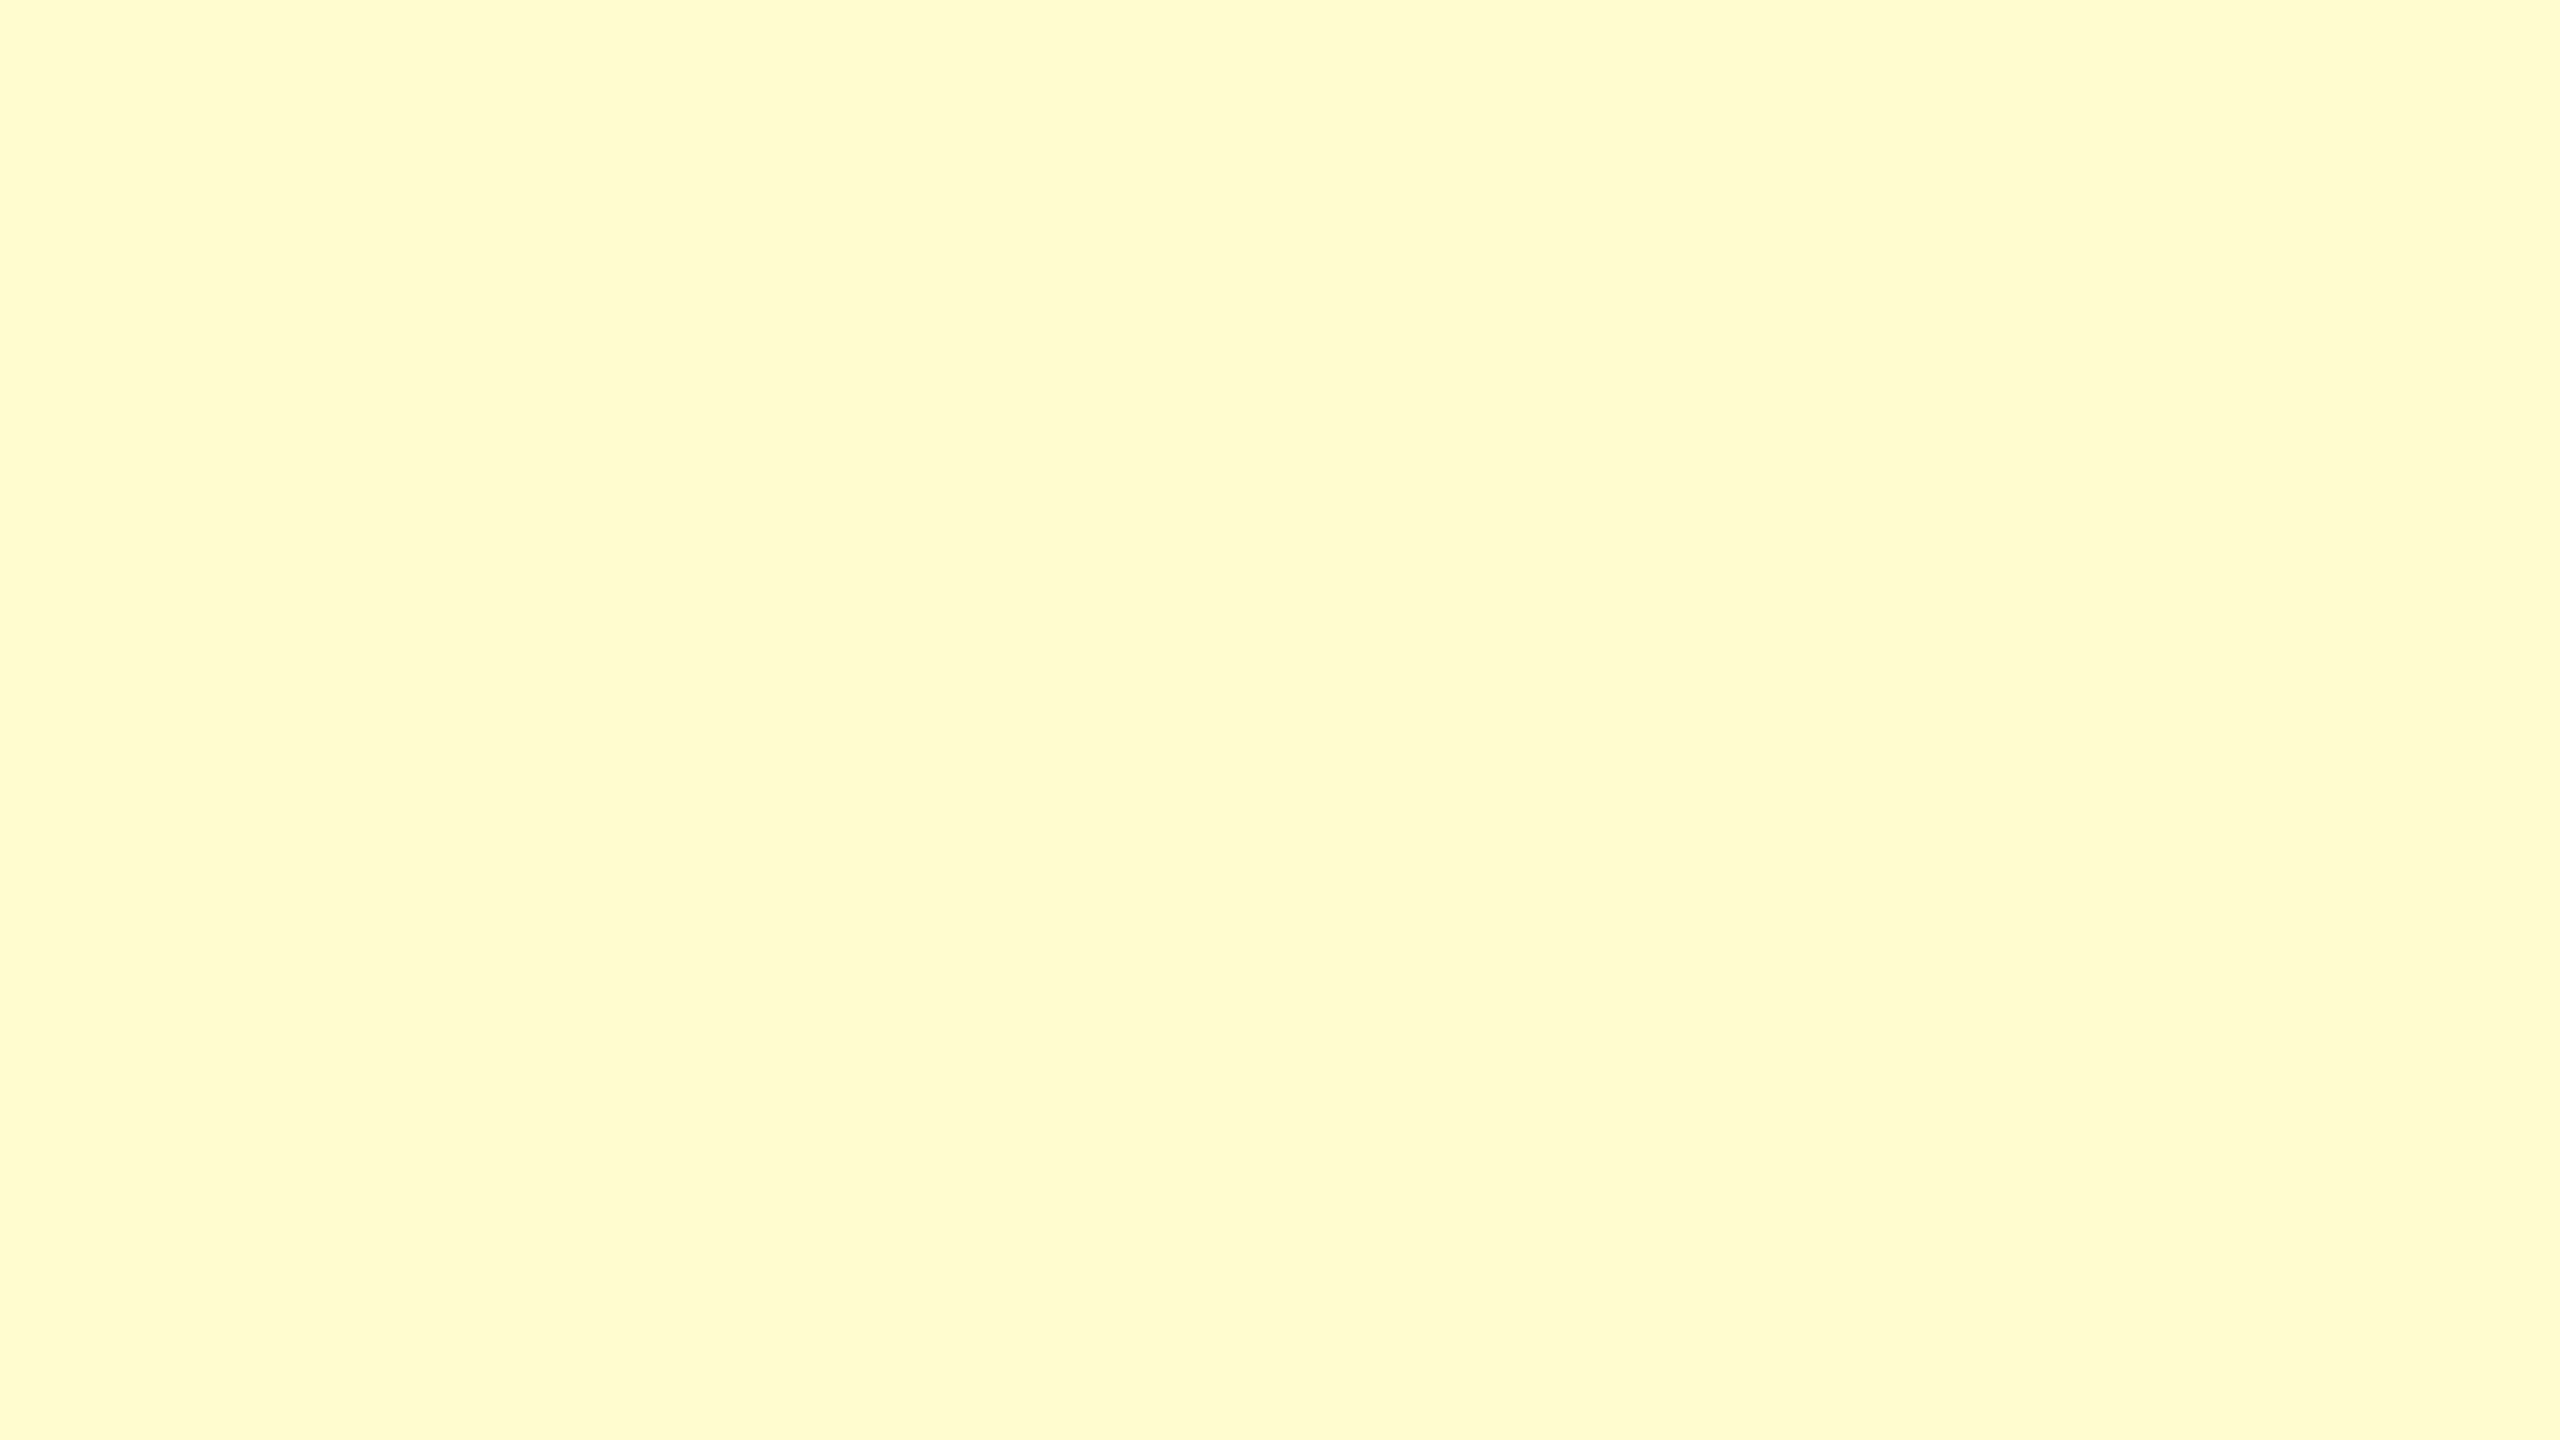 2560x1440 Cream Solid Color Background